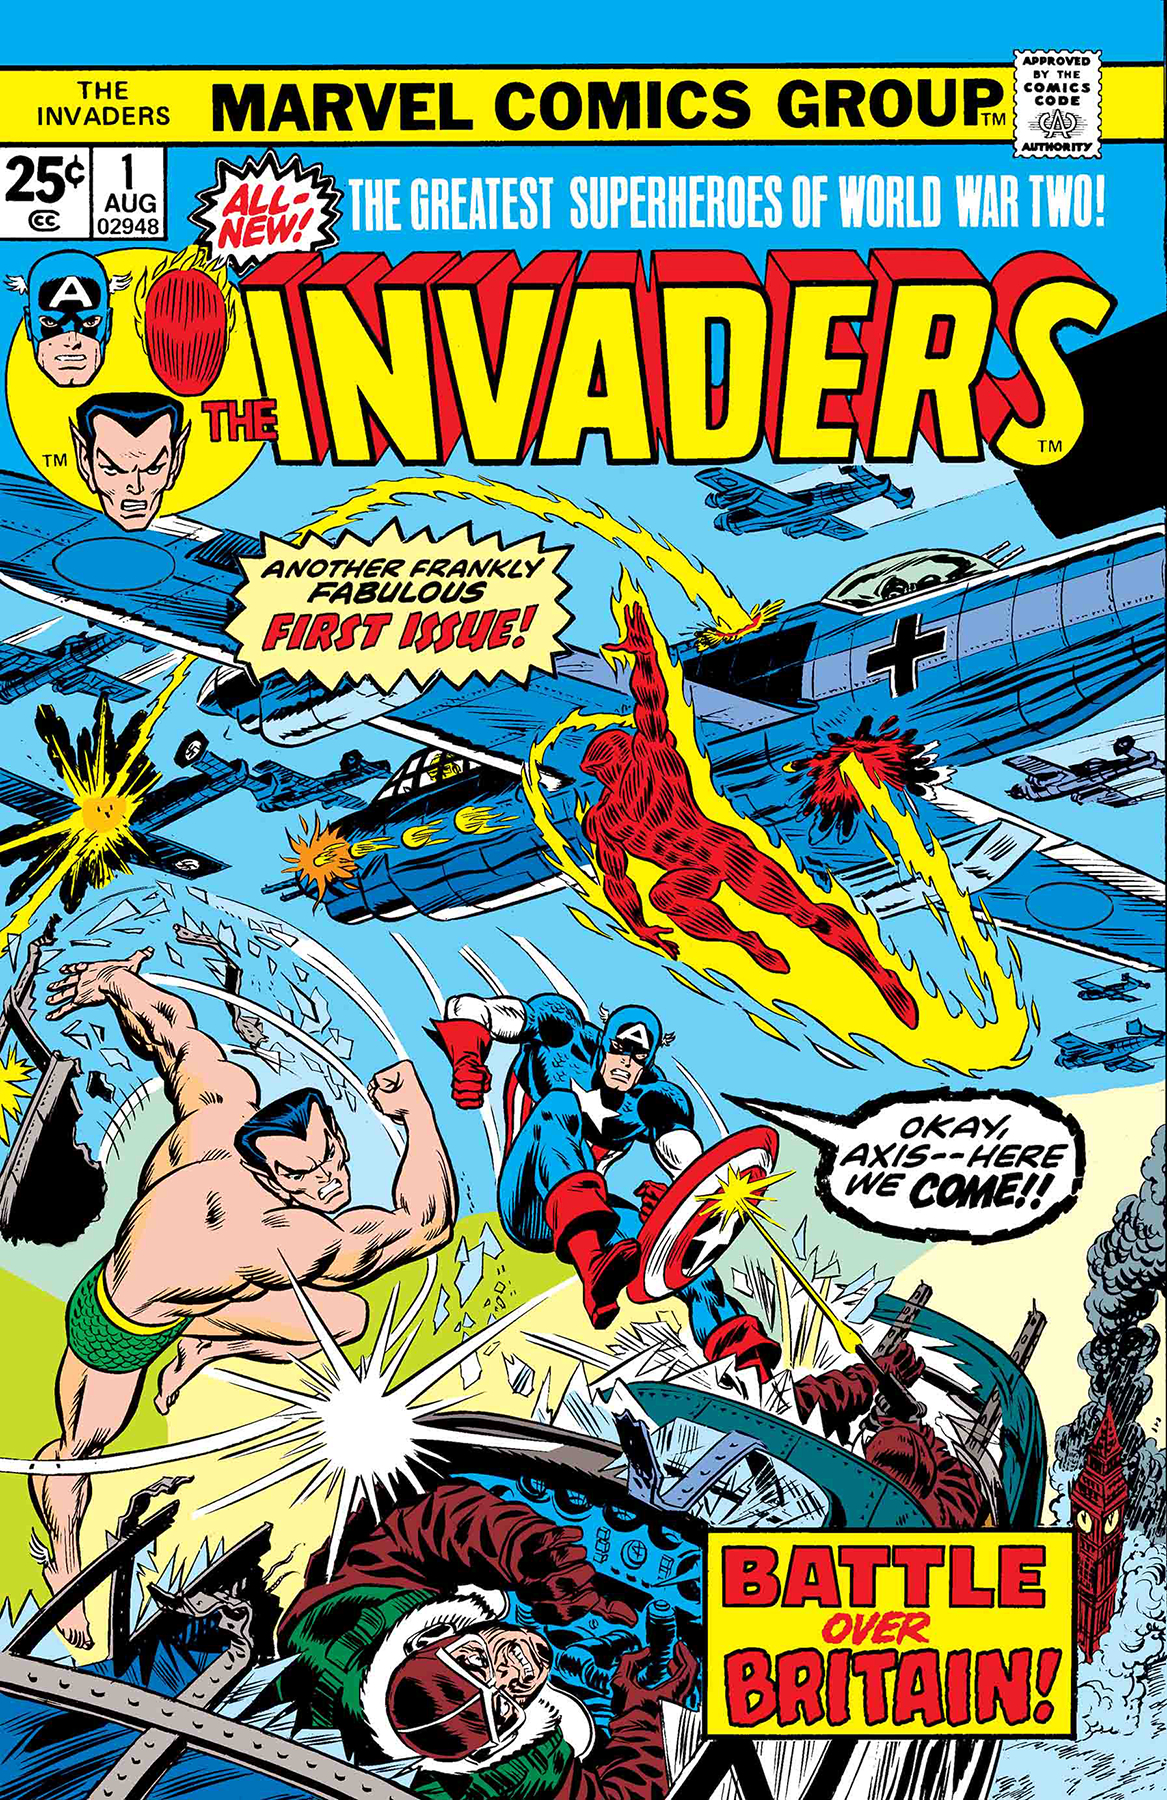 TRUE BELIEVERS INVADERS #1